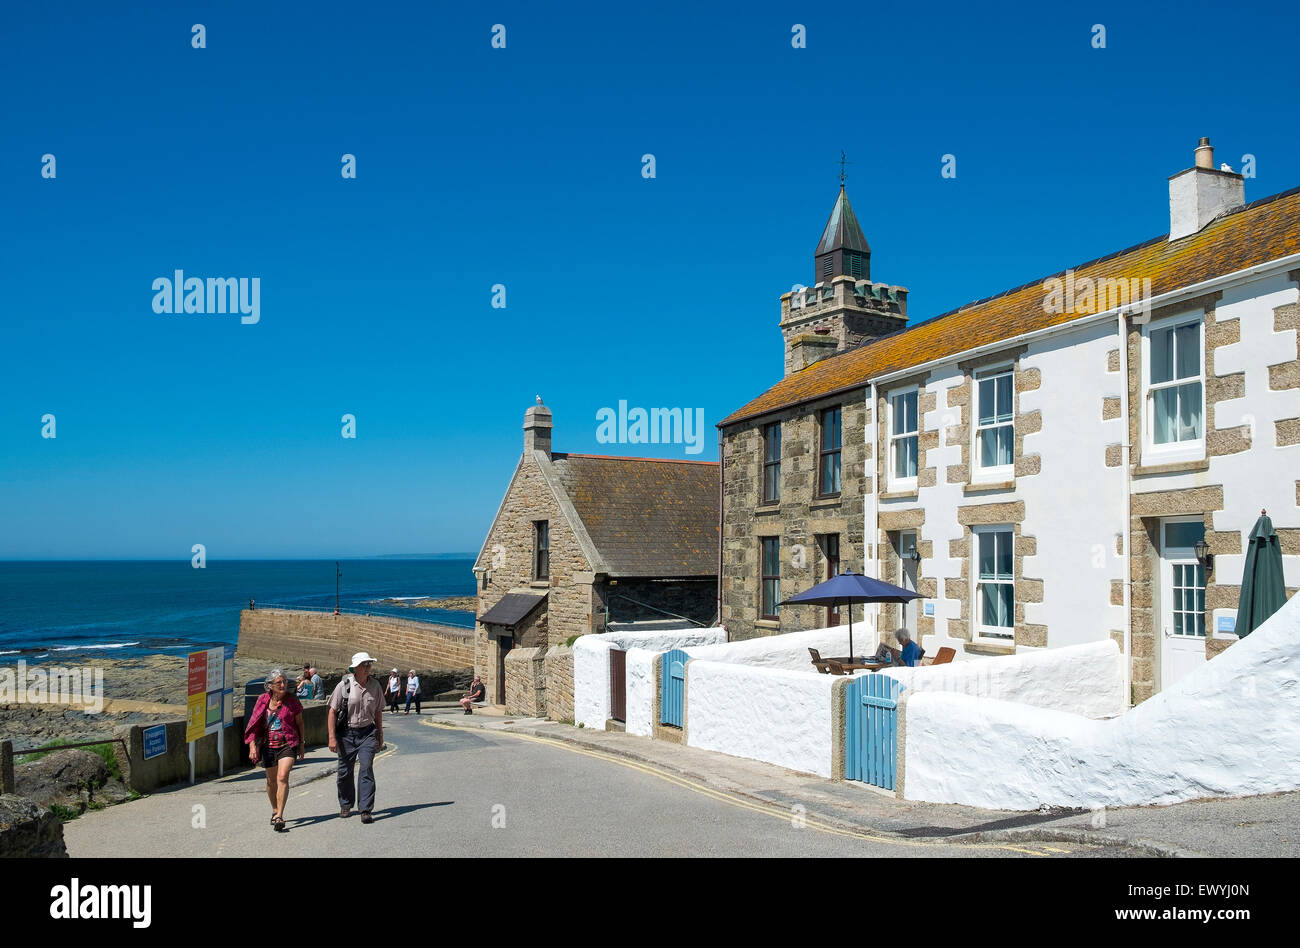 early-summer-in-porthleven-cornwall-engl